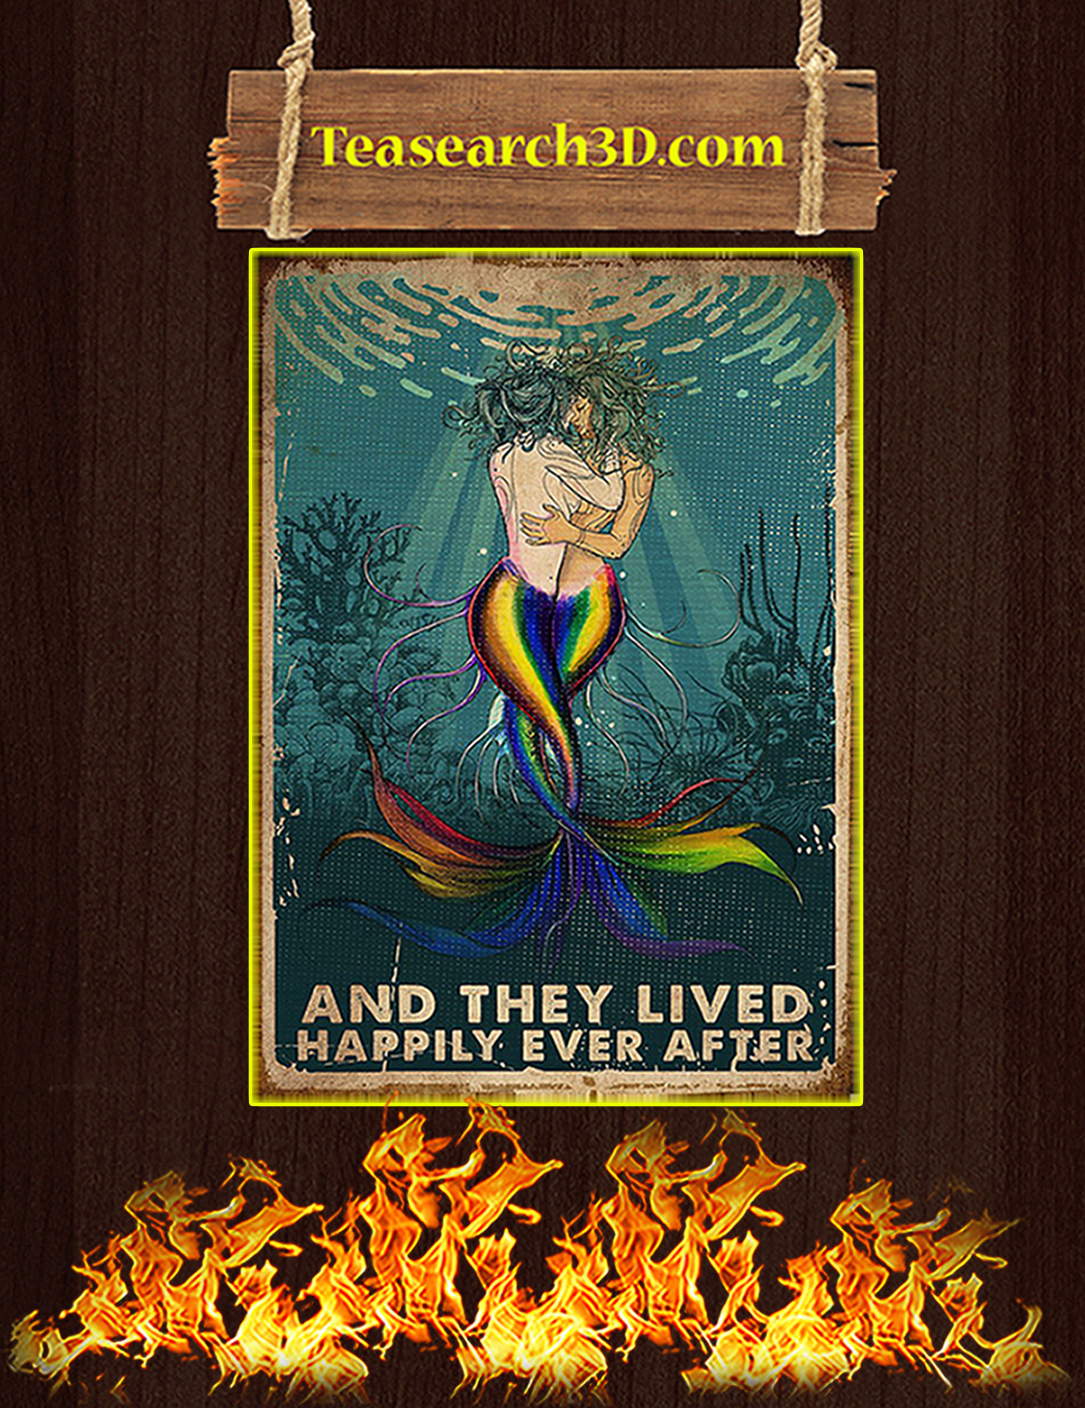 LGBT mermaid and they lived happily ever after poster A2